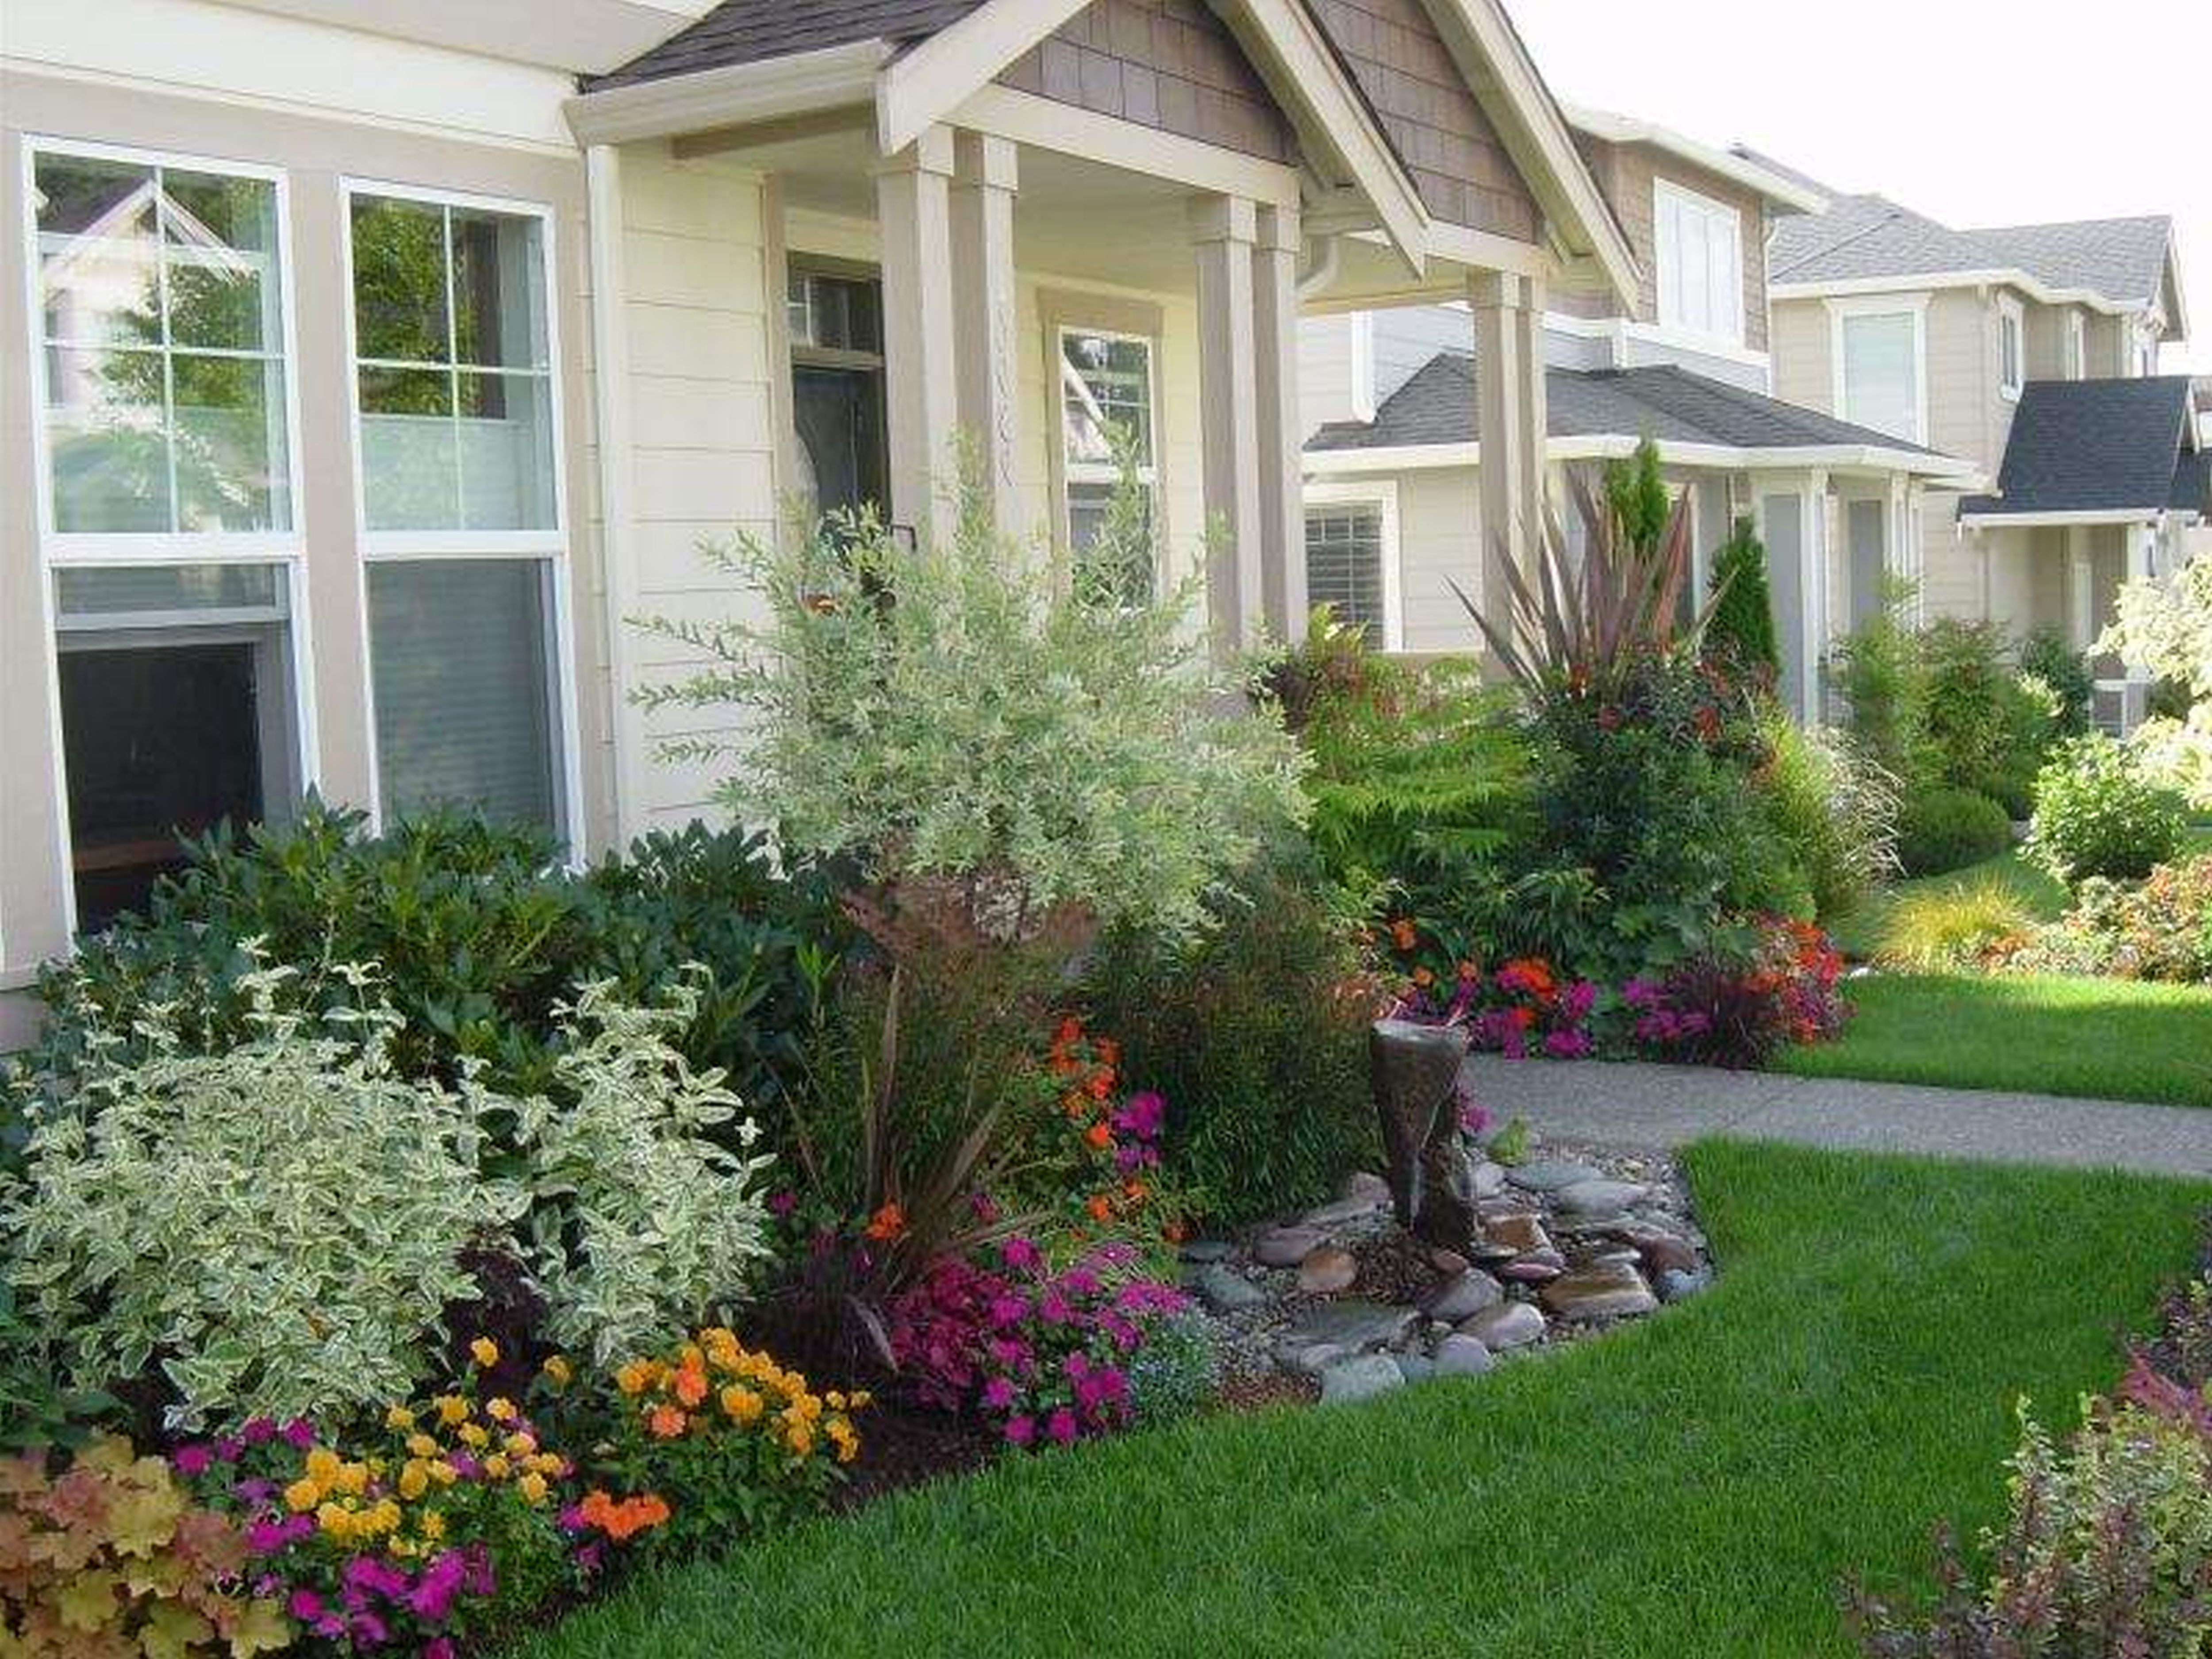 Exterior Landscaping Ideas For Small Front Yard Townhouse With Small Front  Yard Landscaping Ideas Low Maintenance Also Small Landscaping Ideas Front  Yard ...